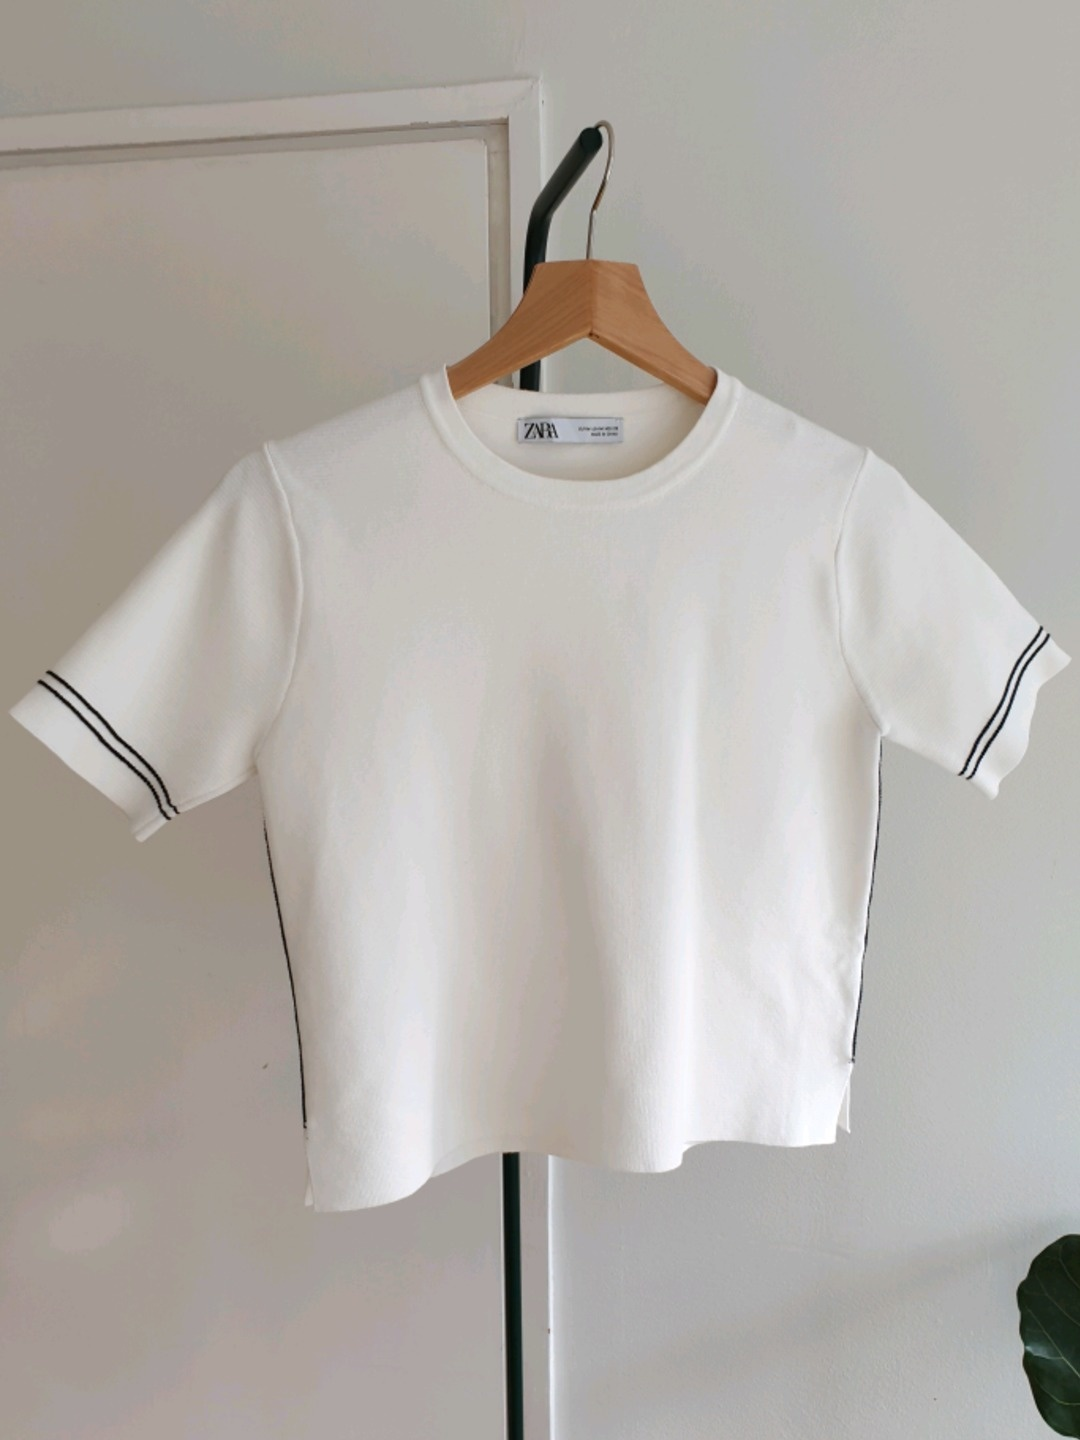 Damen tops & t-shirts - ZARA photo 1